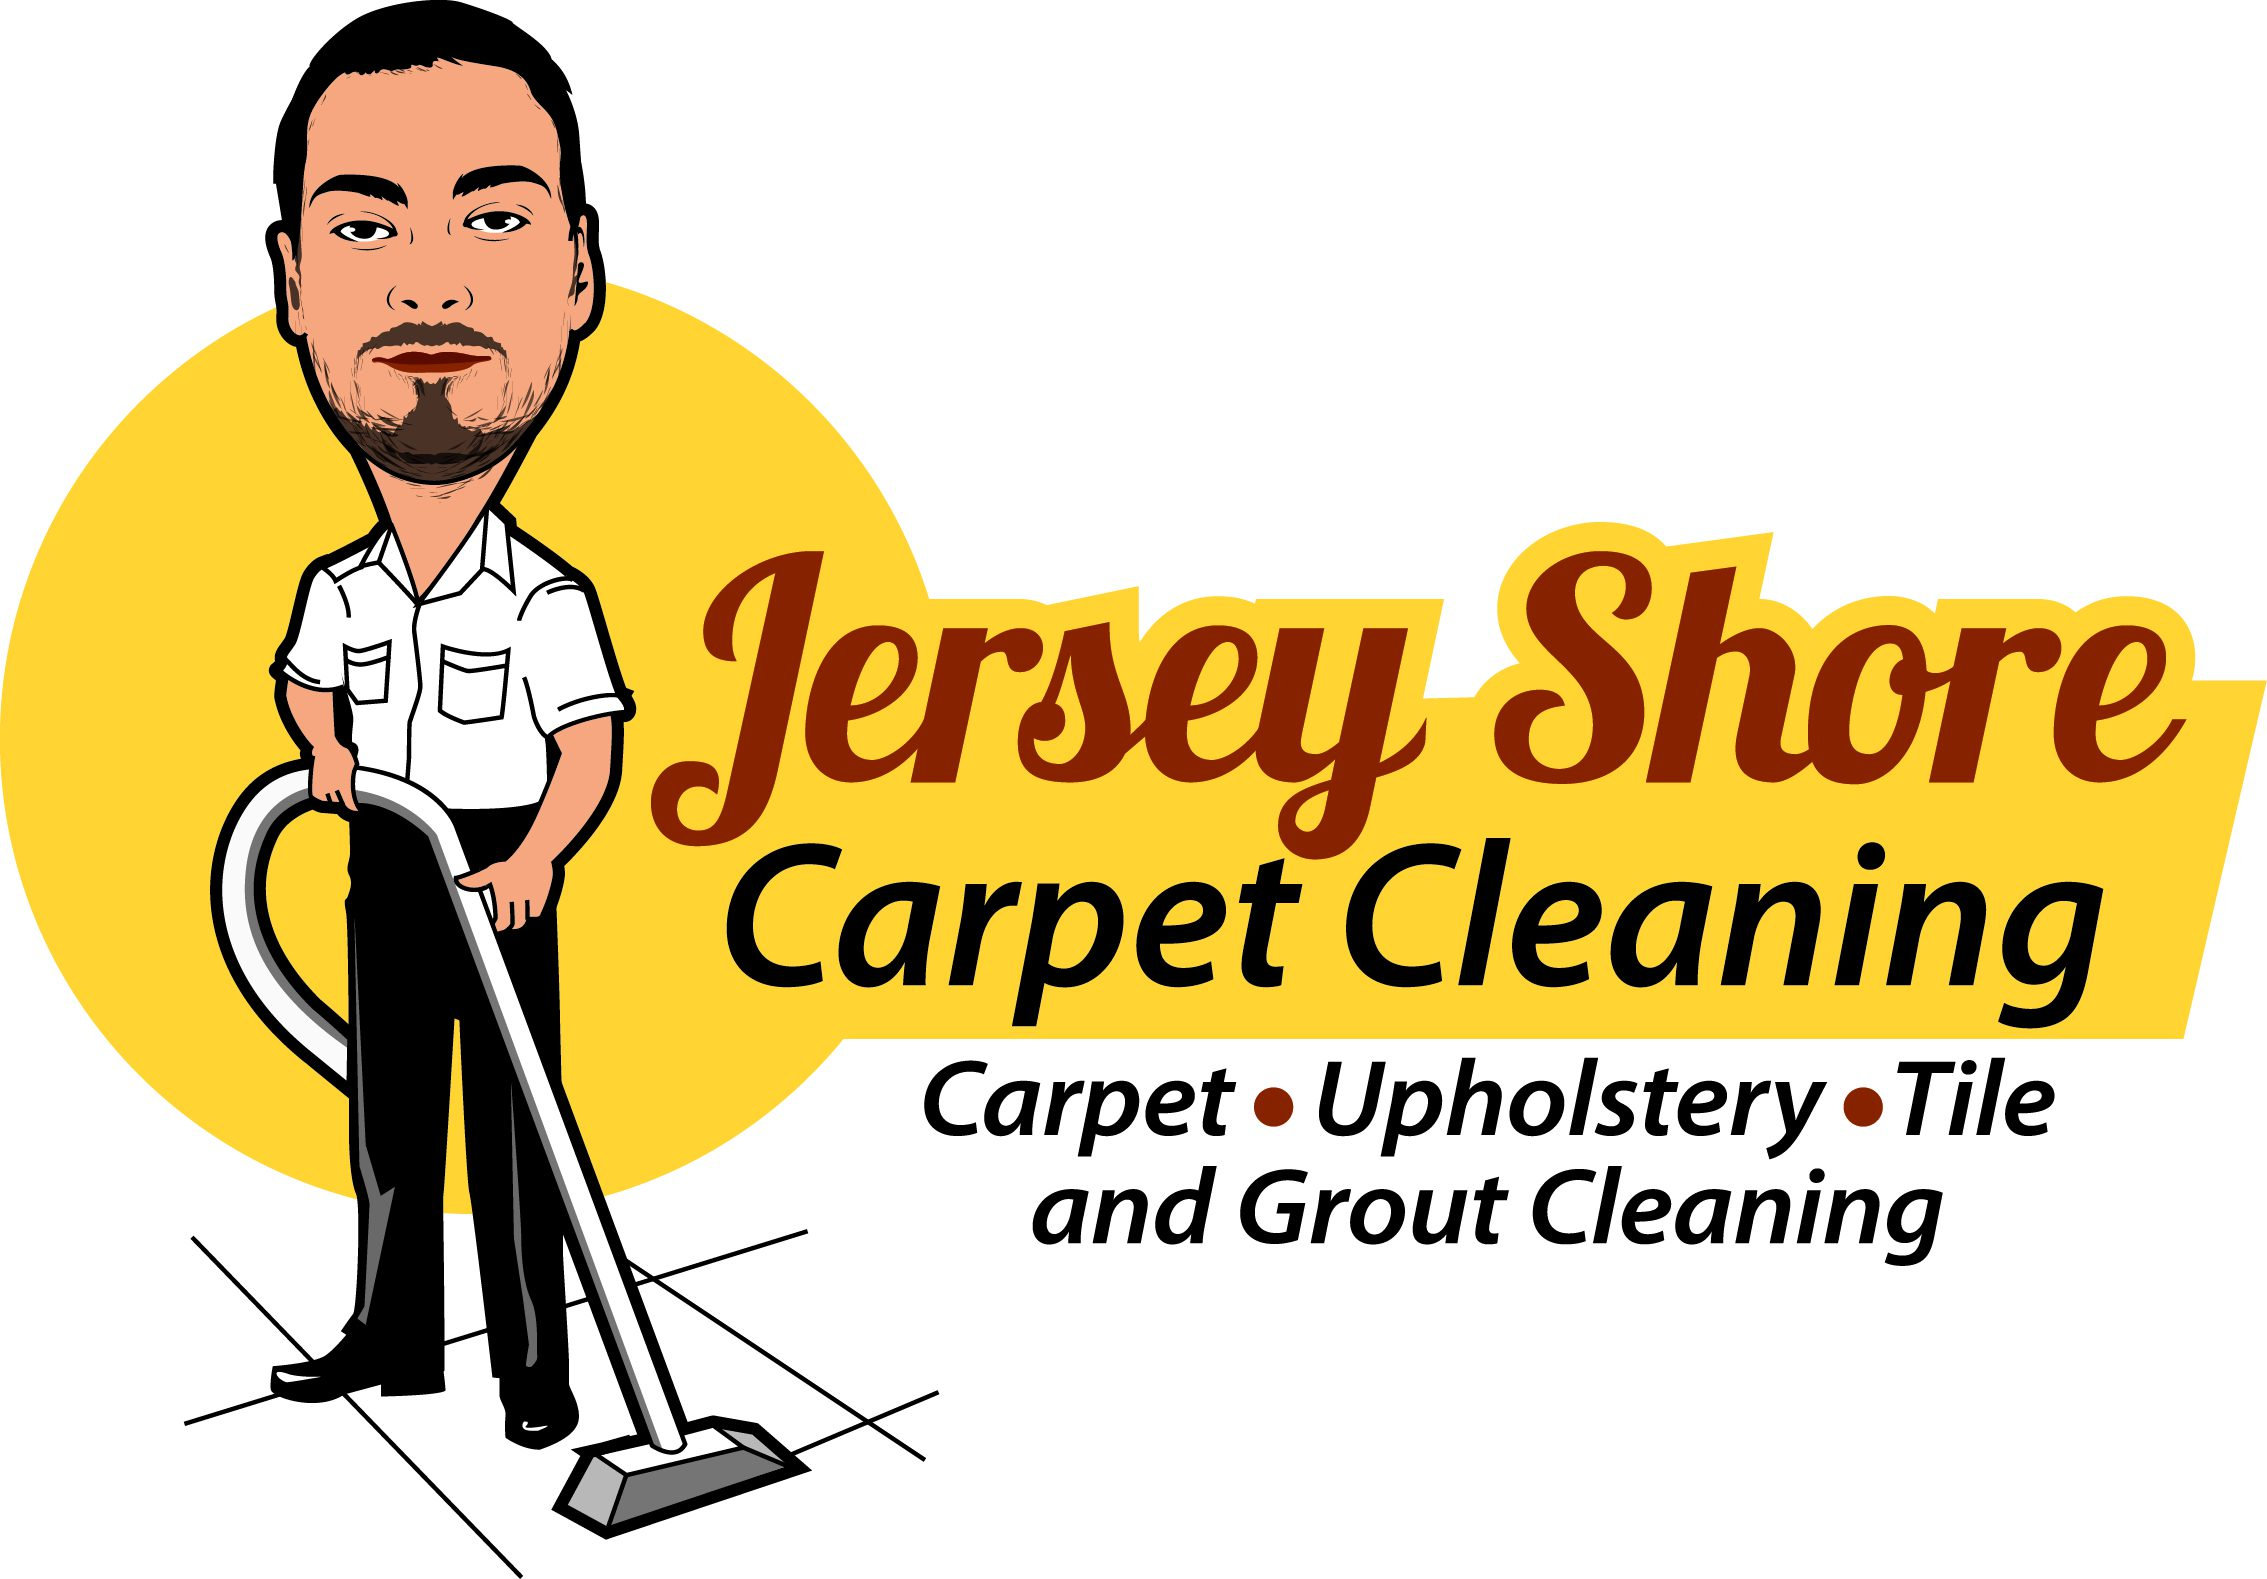 Jersey Shore Carpet Cleaning